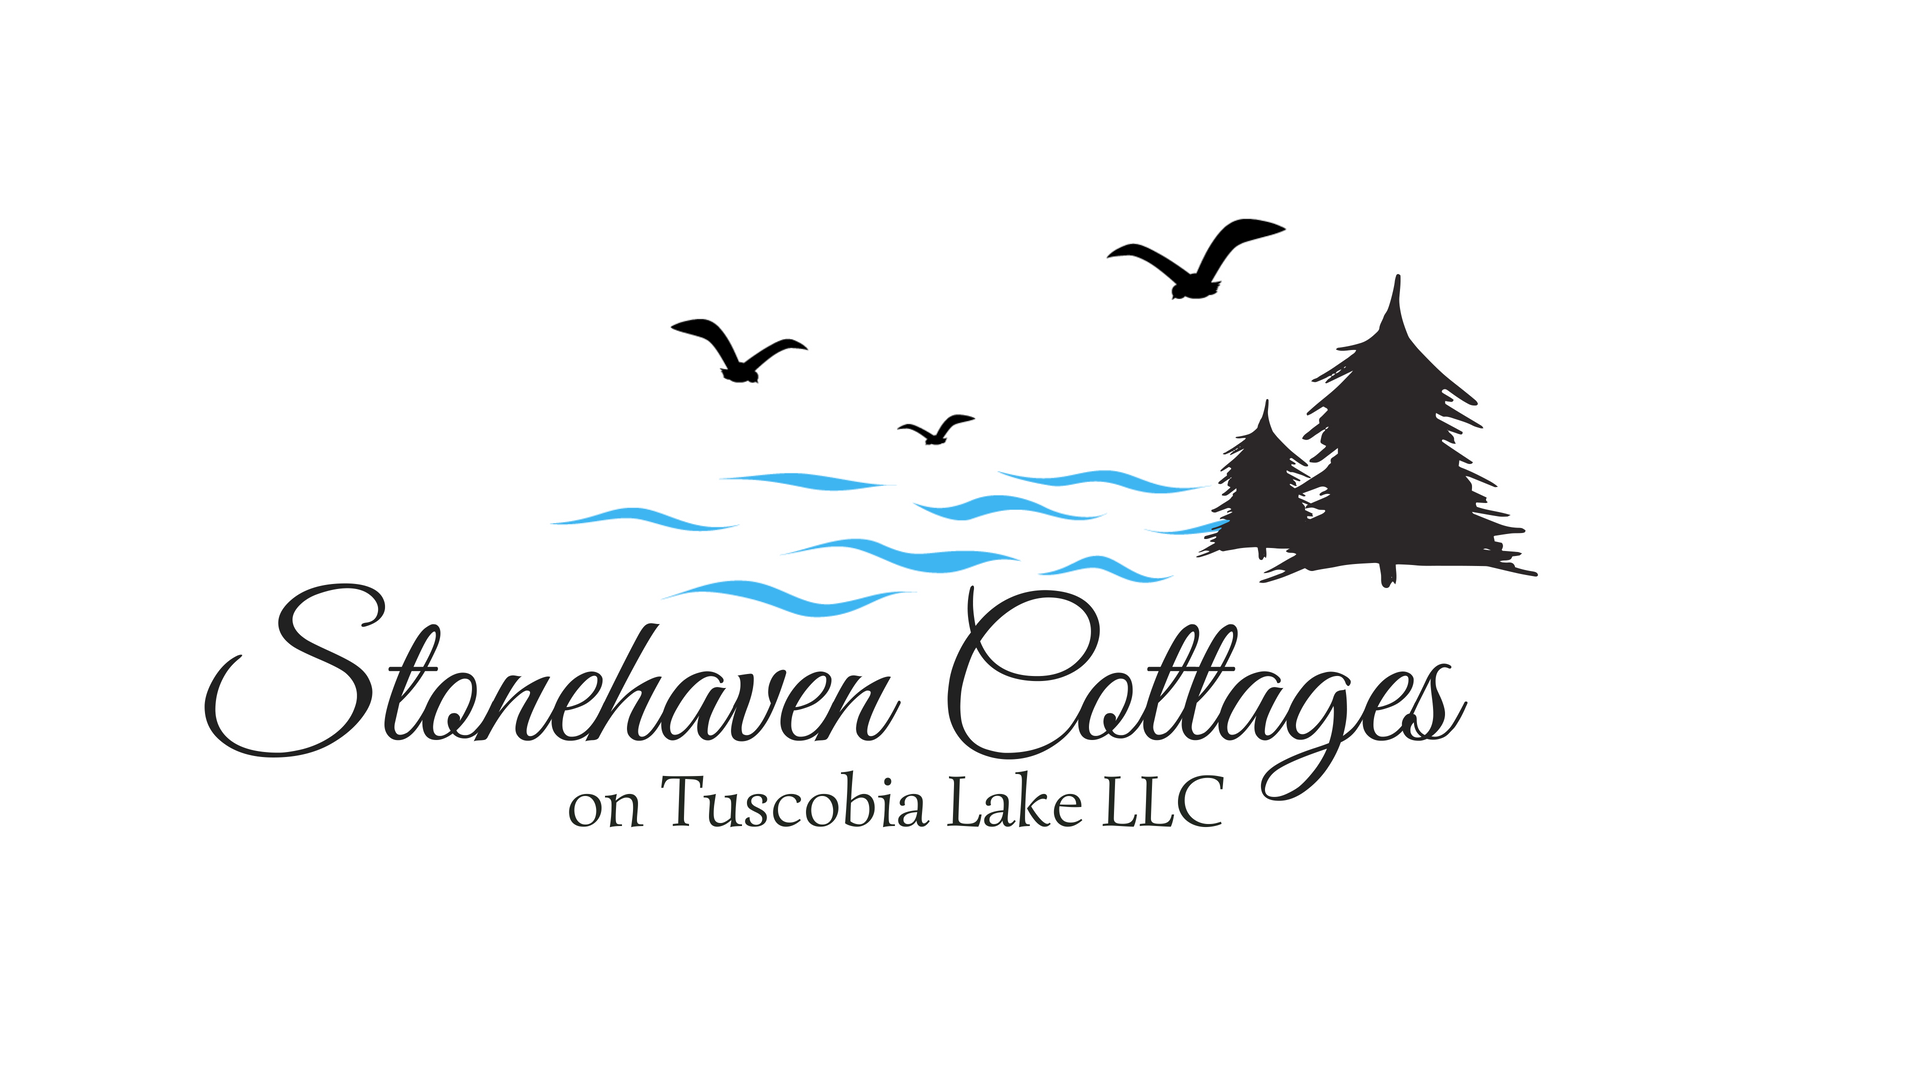 Stonehaven Cottages | Resort near Rice Lake, WI